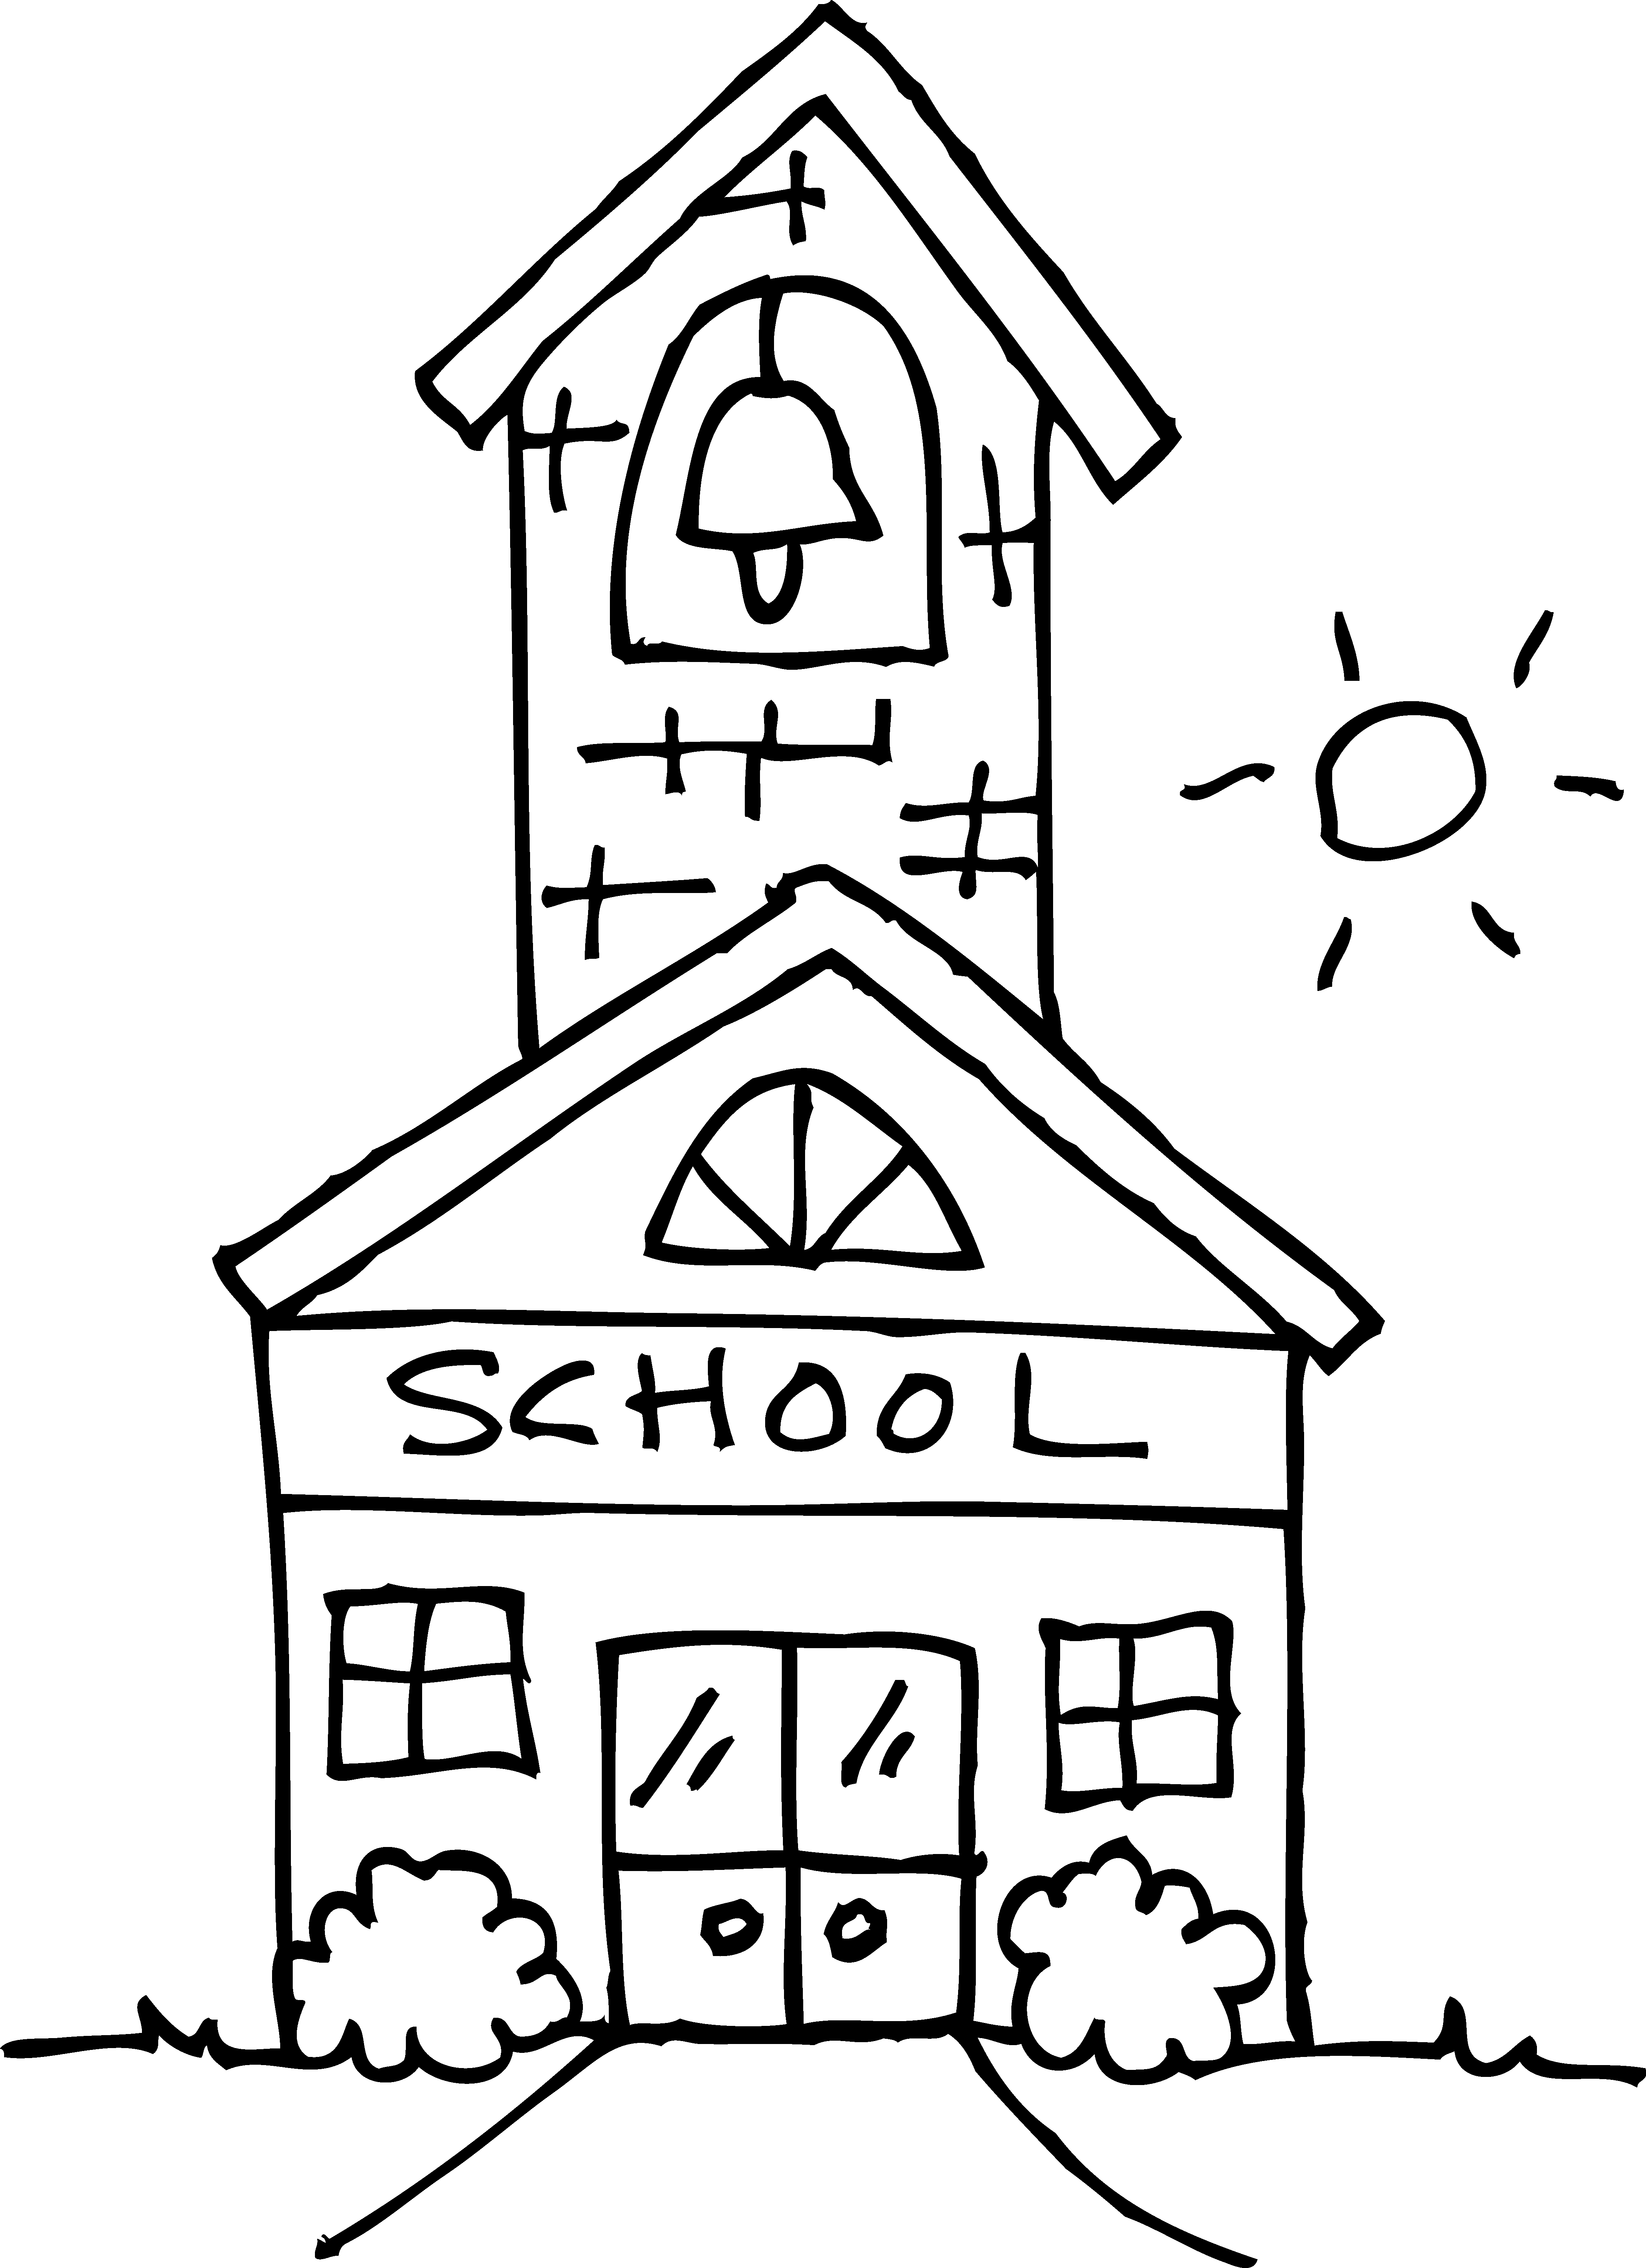 school building coloring pages - photo#10